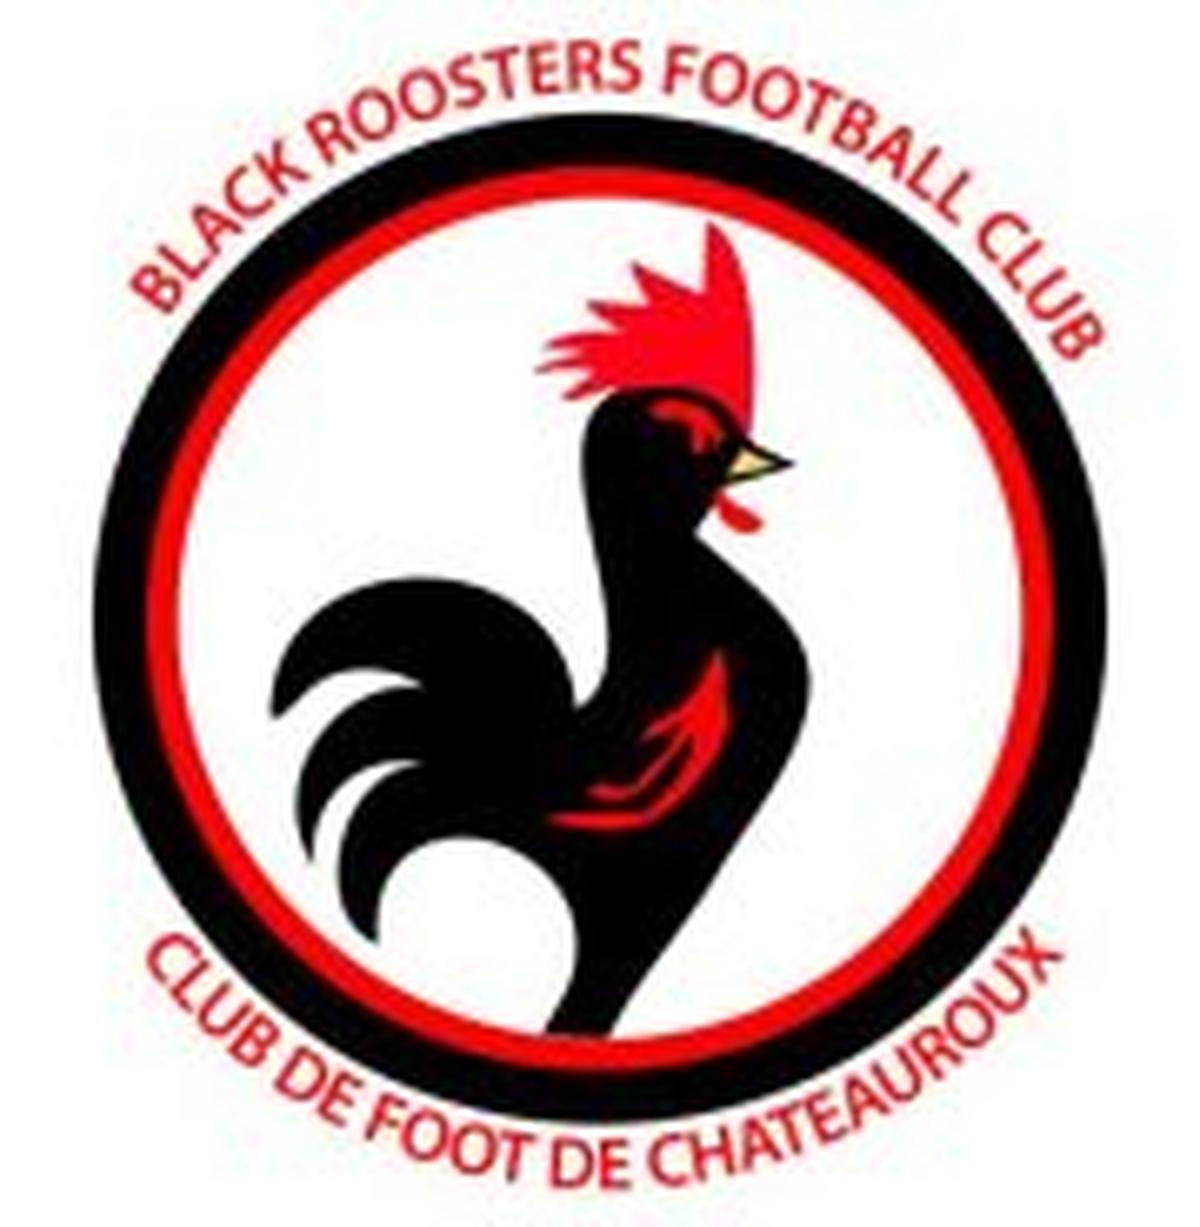 FC BLACK ROOSTERS CHATEAUROUX